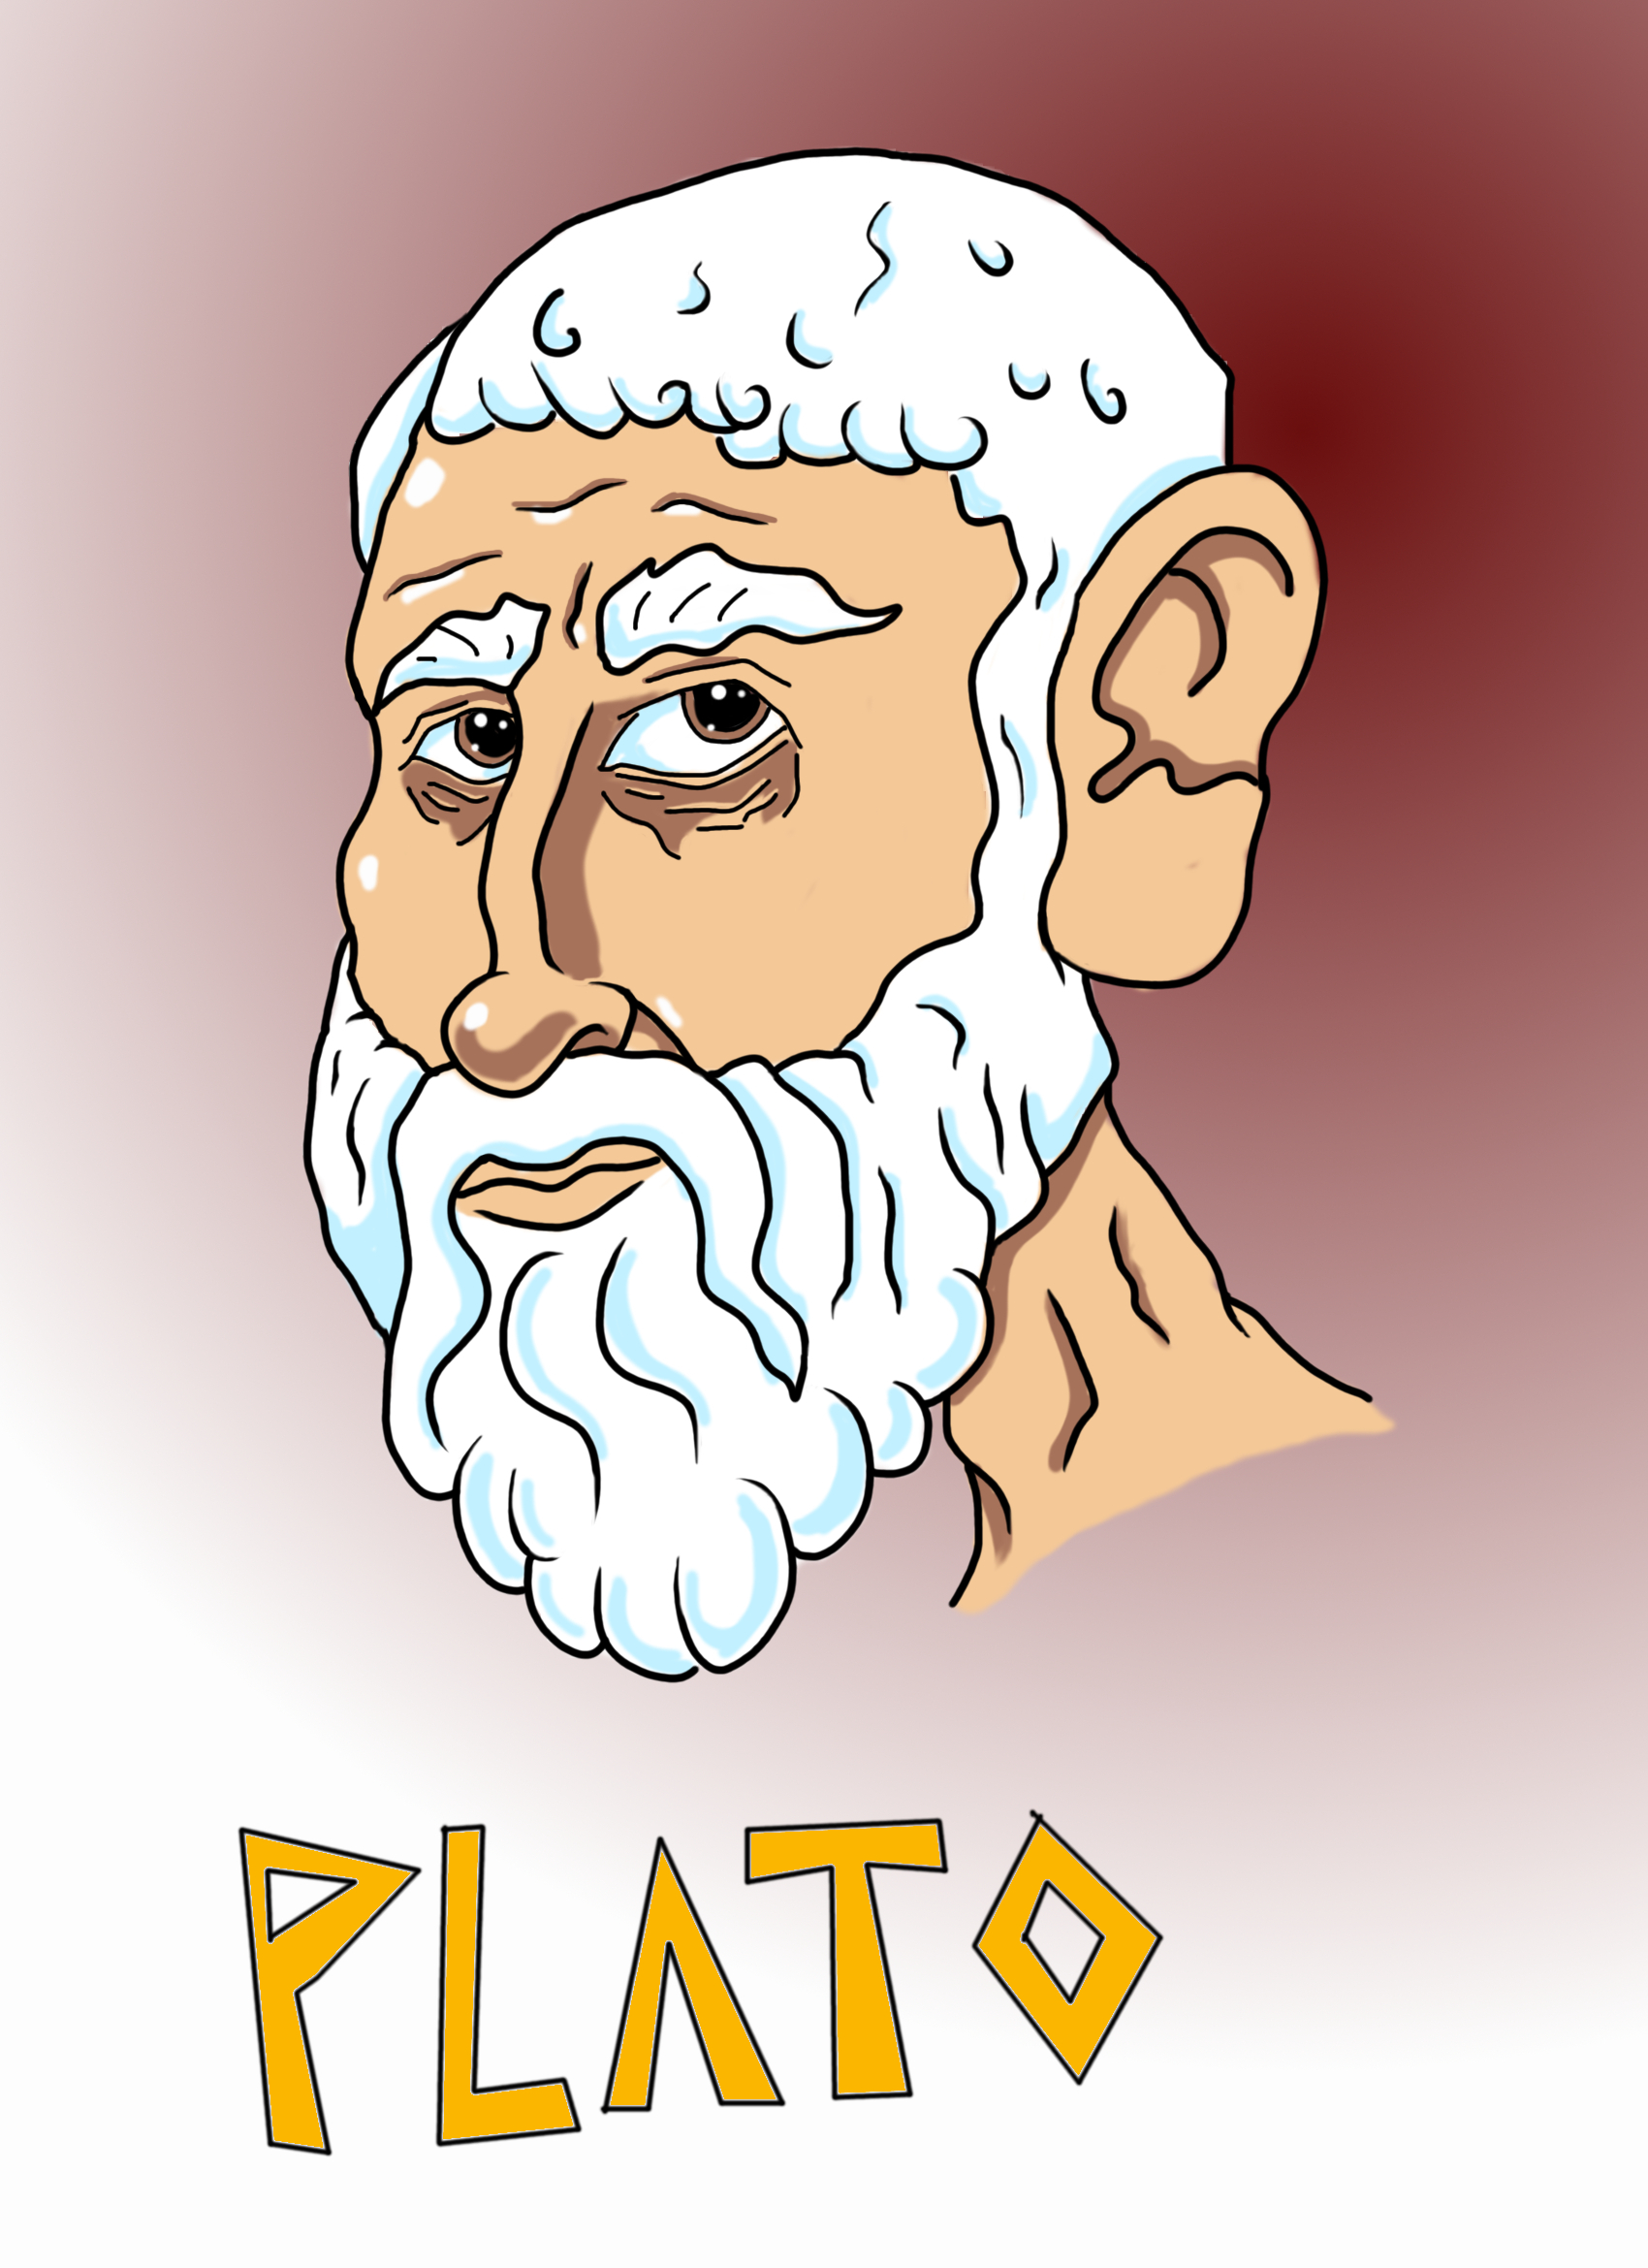 Plato's Republic (reading five)